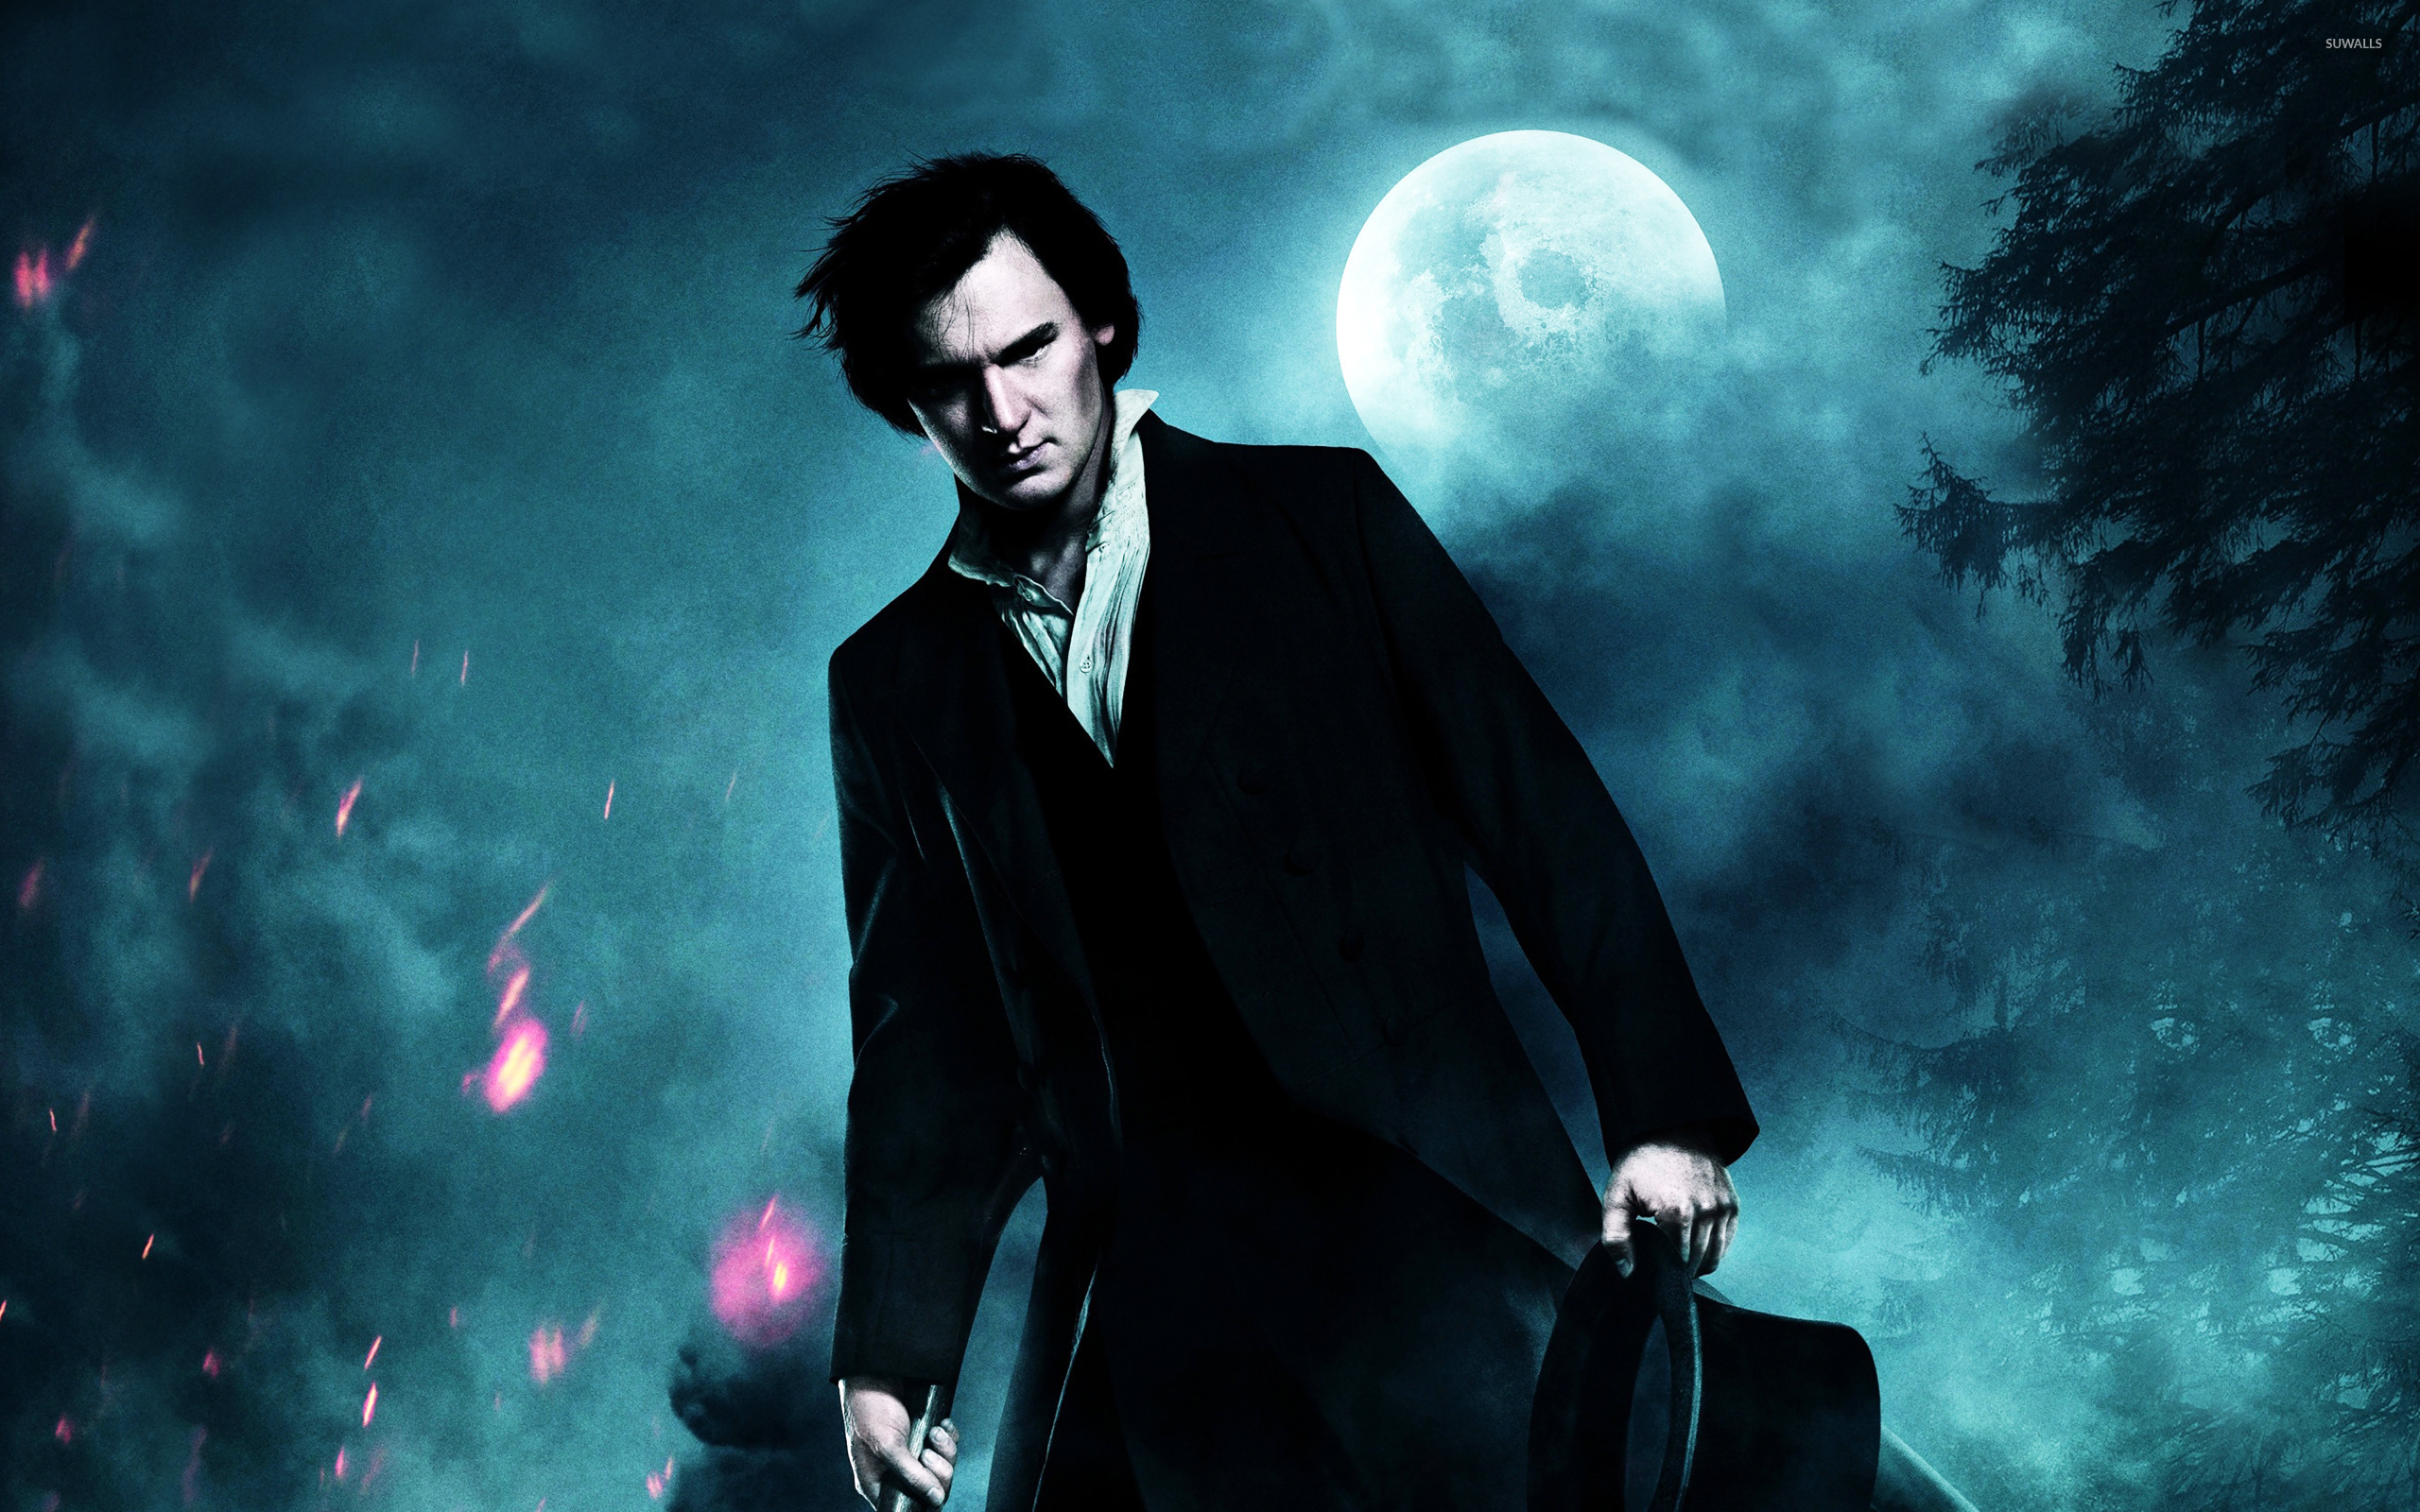 Abraham lincoln: vampire hunter hd wallpaper | background image.